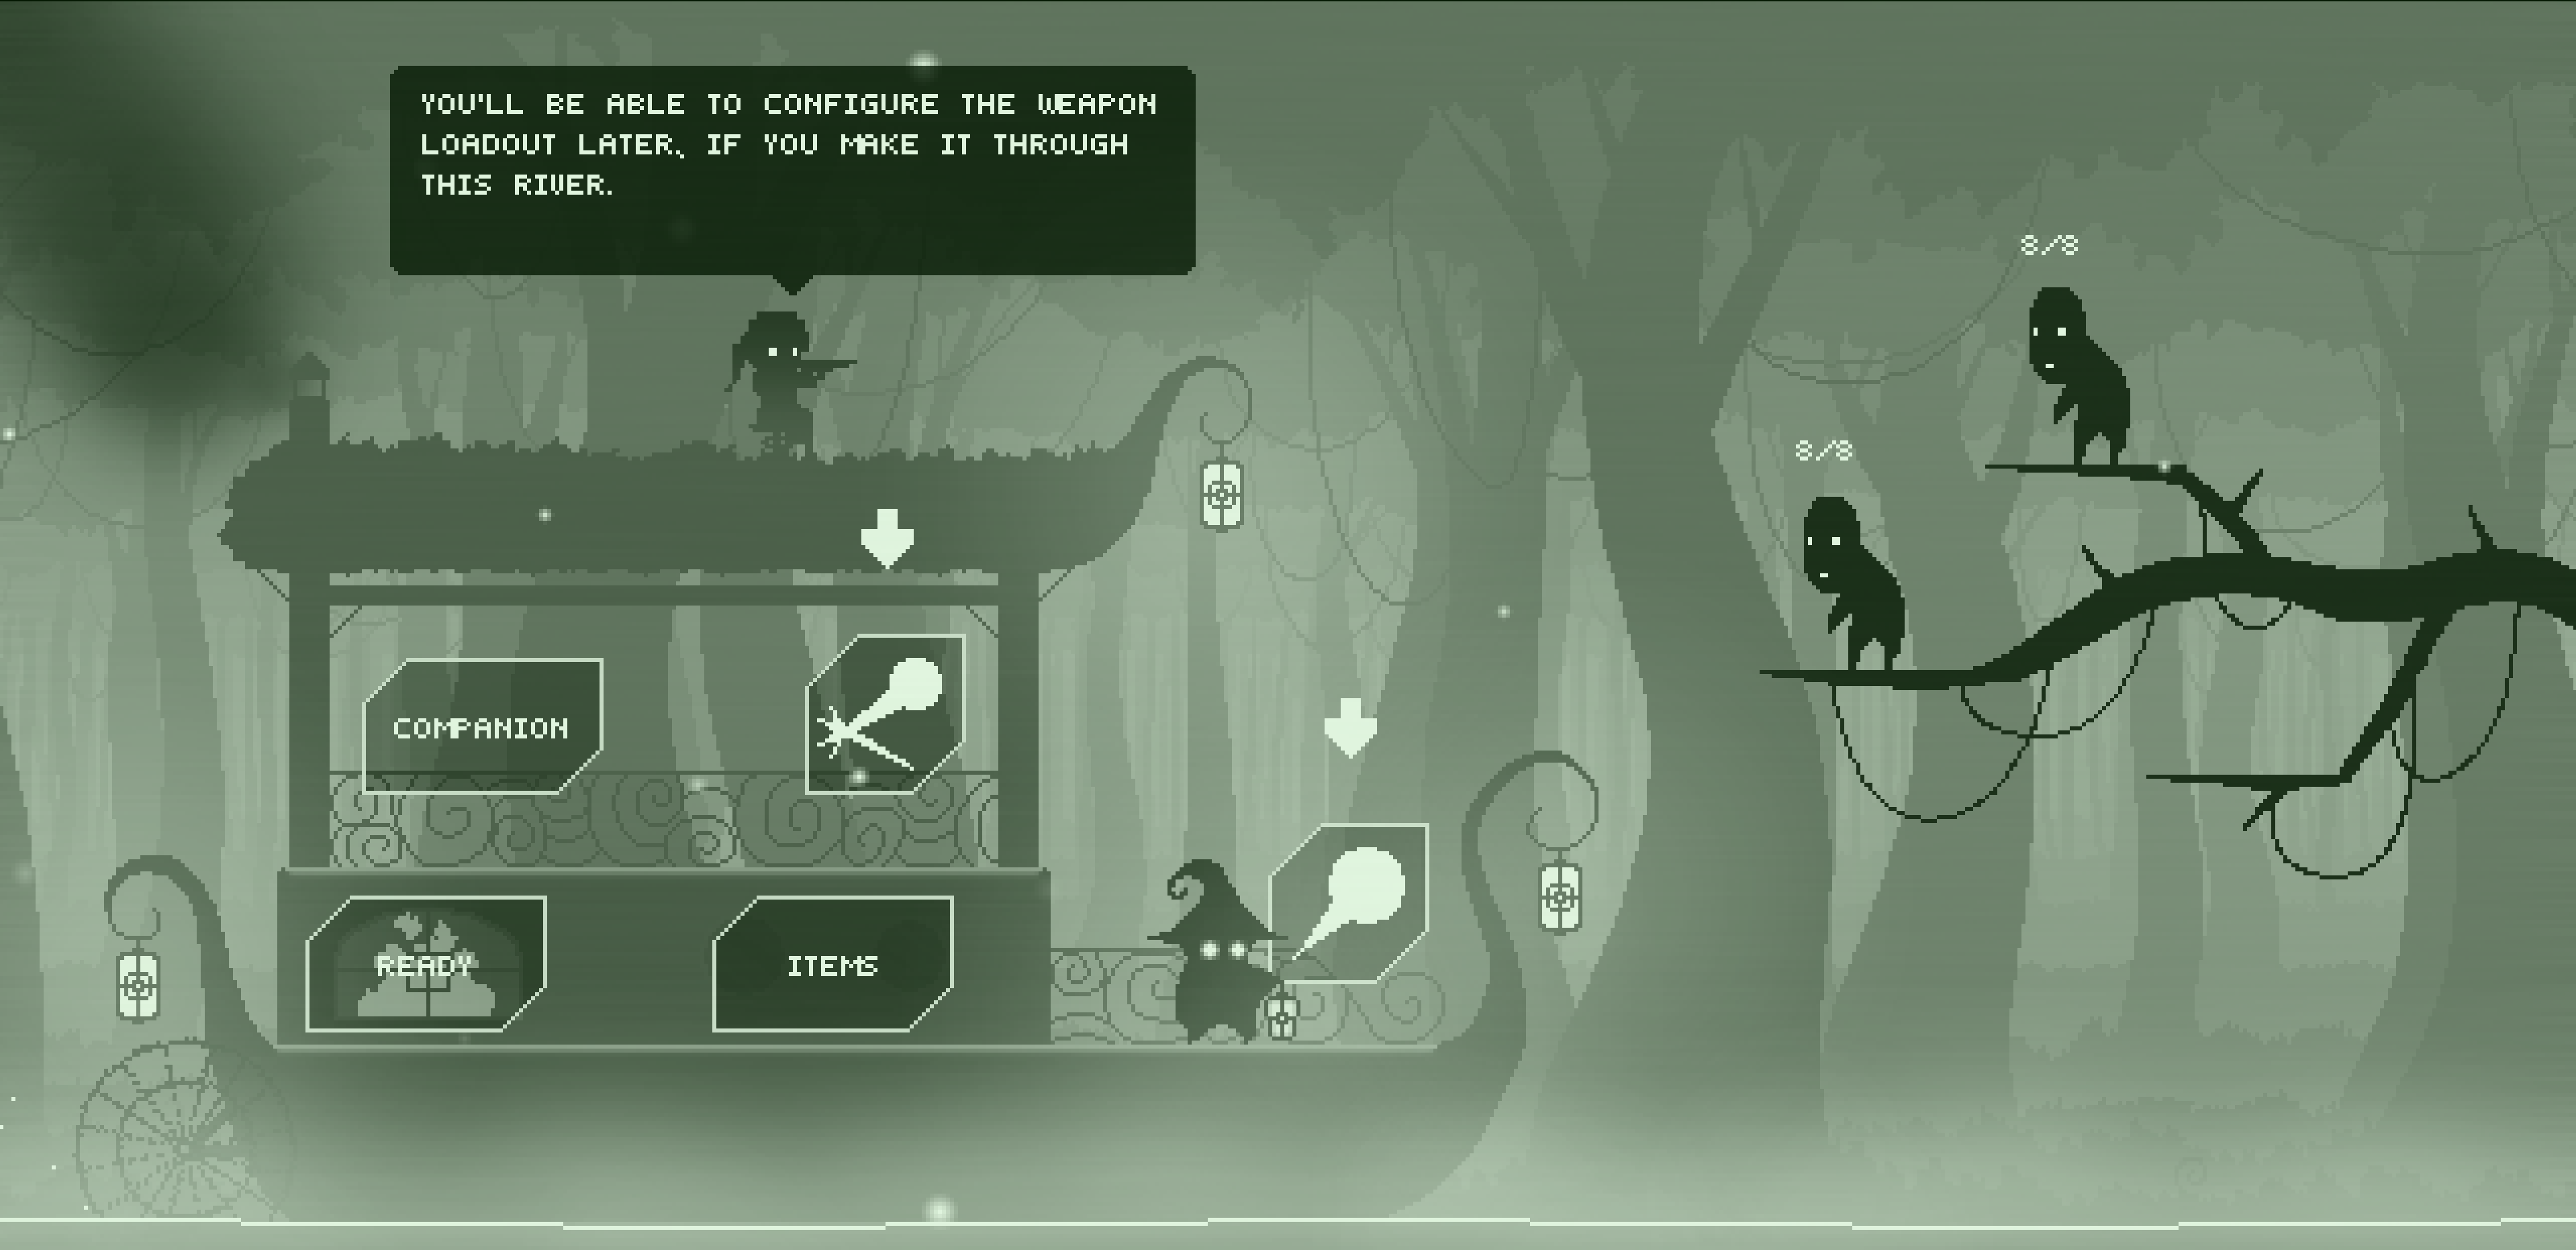 The Treehouse Man. Tutorial combat explaining that weapon customization will be available later